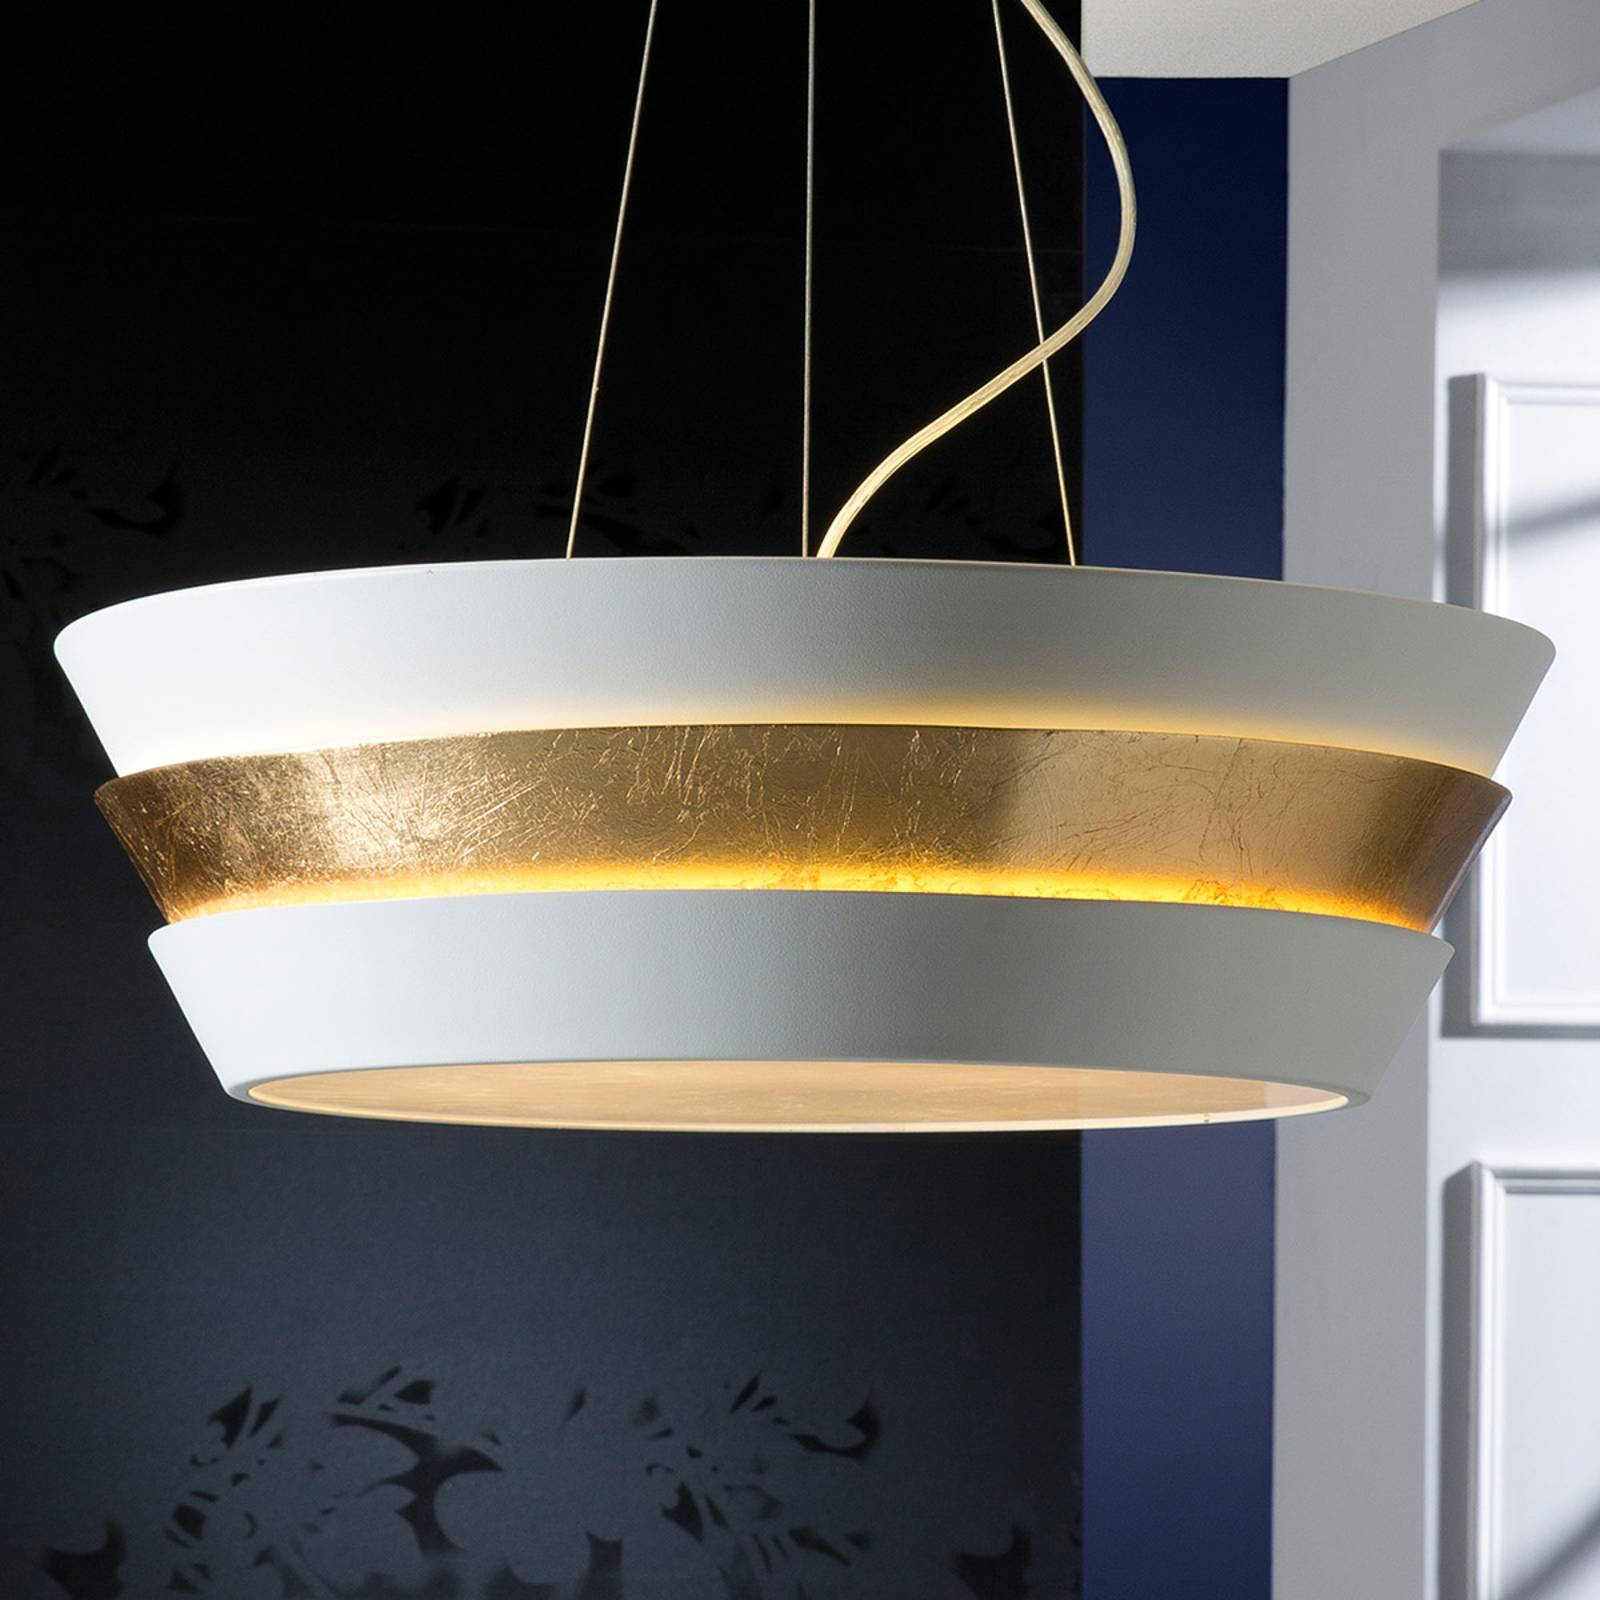 Noble hanging light Isis with gold-white lampshade from Schuller